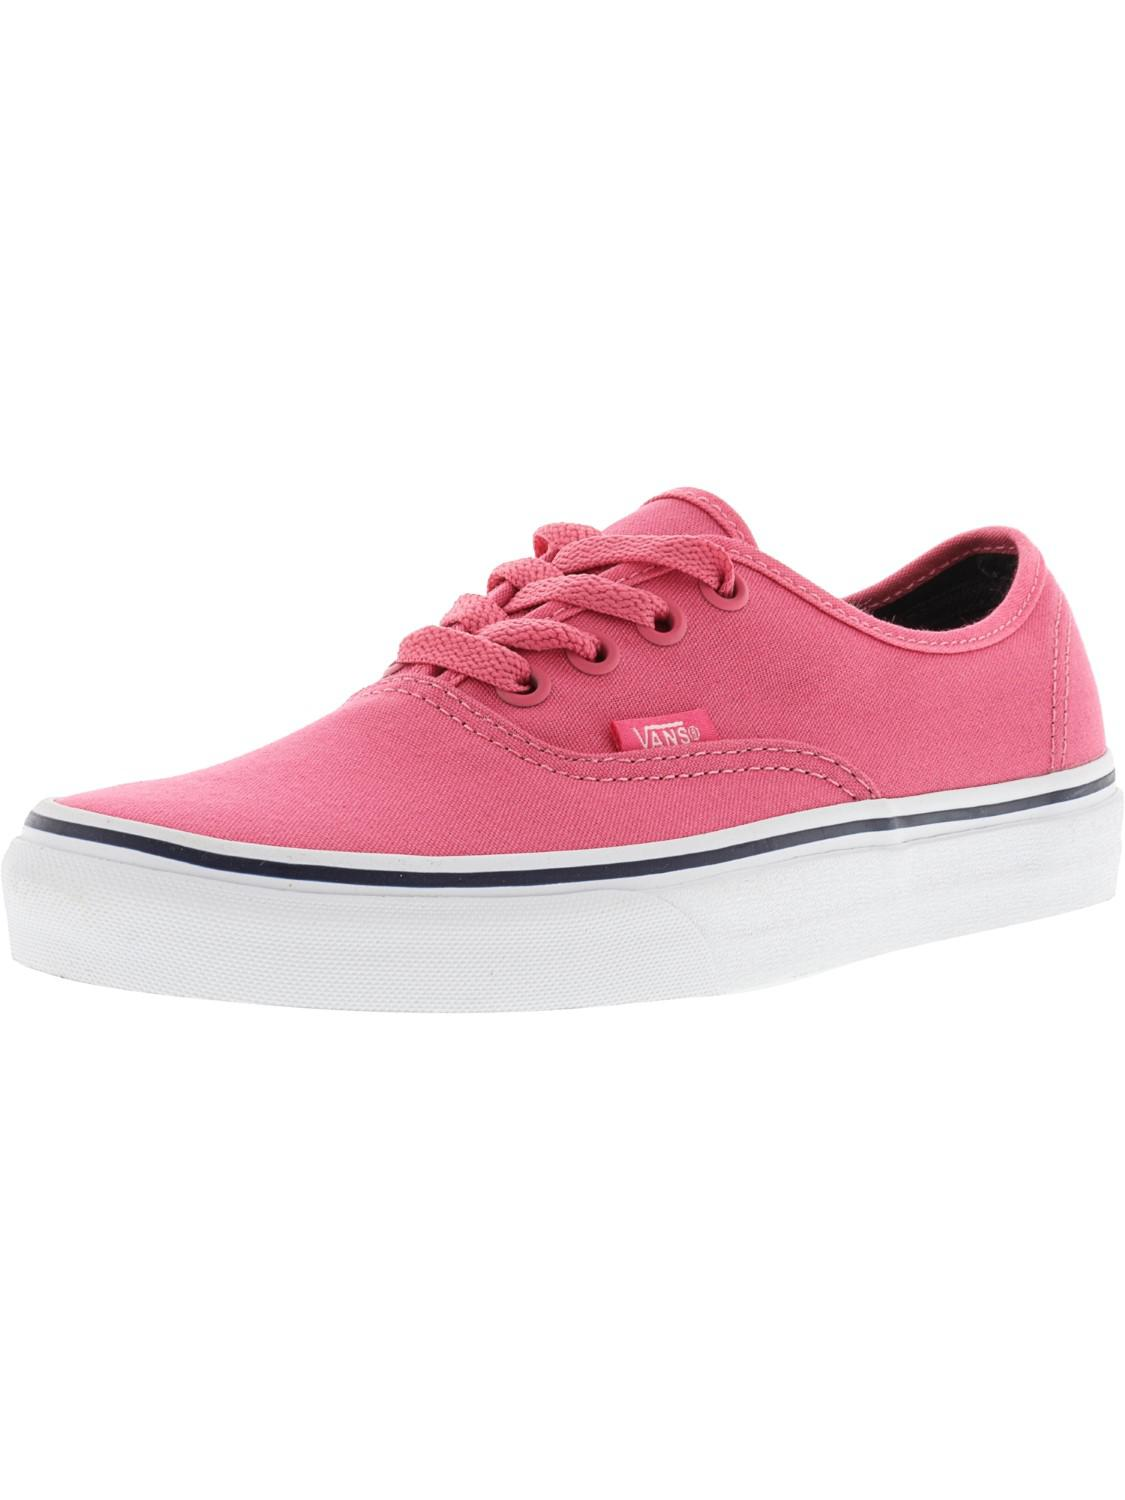 c9c1e81ce75 Vans - Pink Authentic Ankle-high Canvas Skateboarding Shoe - 7.5m 6m -  Lyst. View Fullscreen